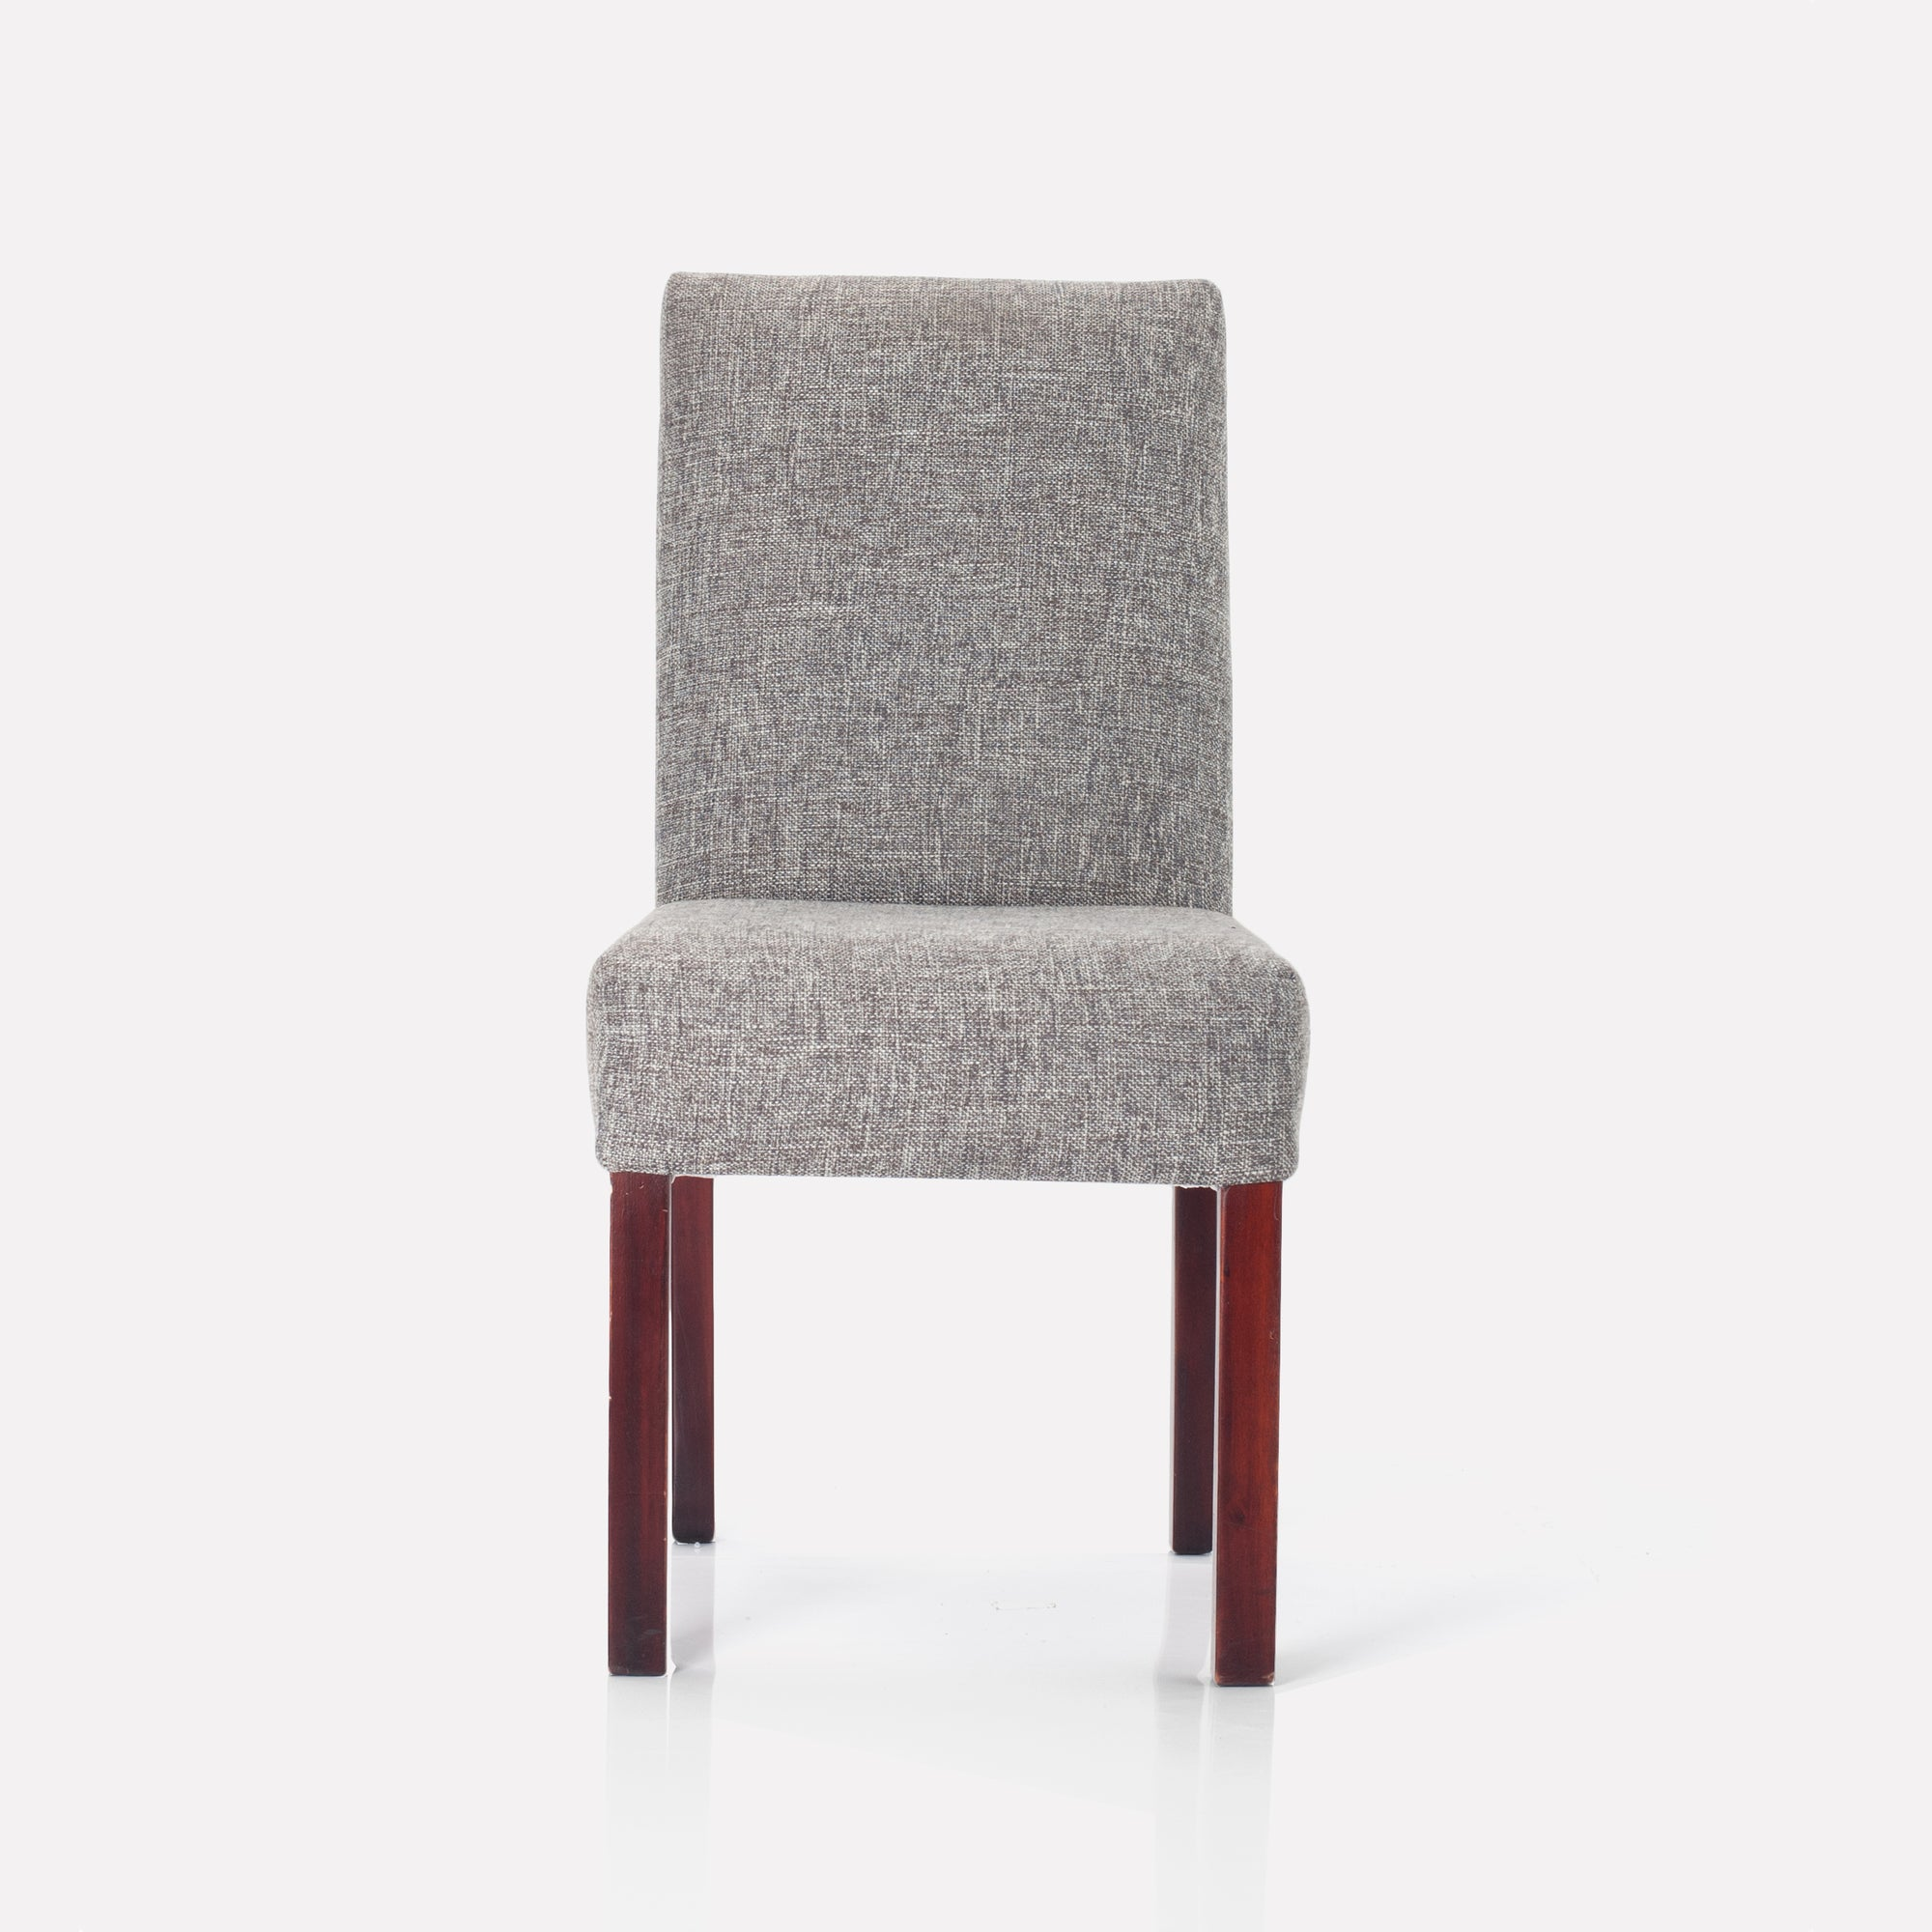 Pravo Low back dining chair